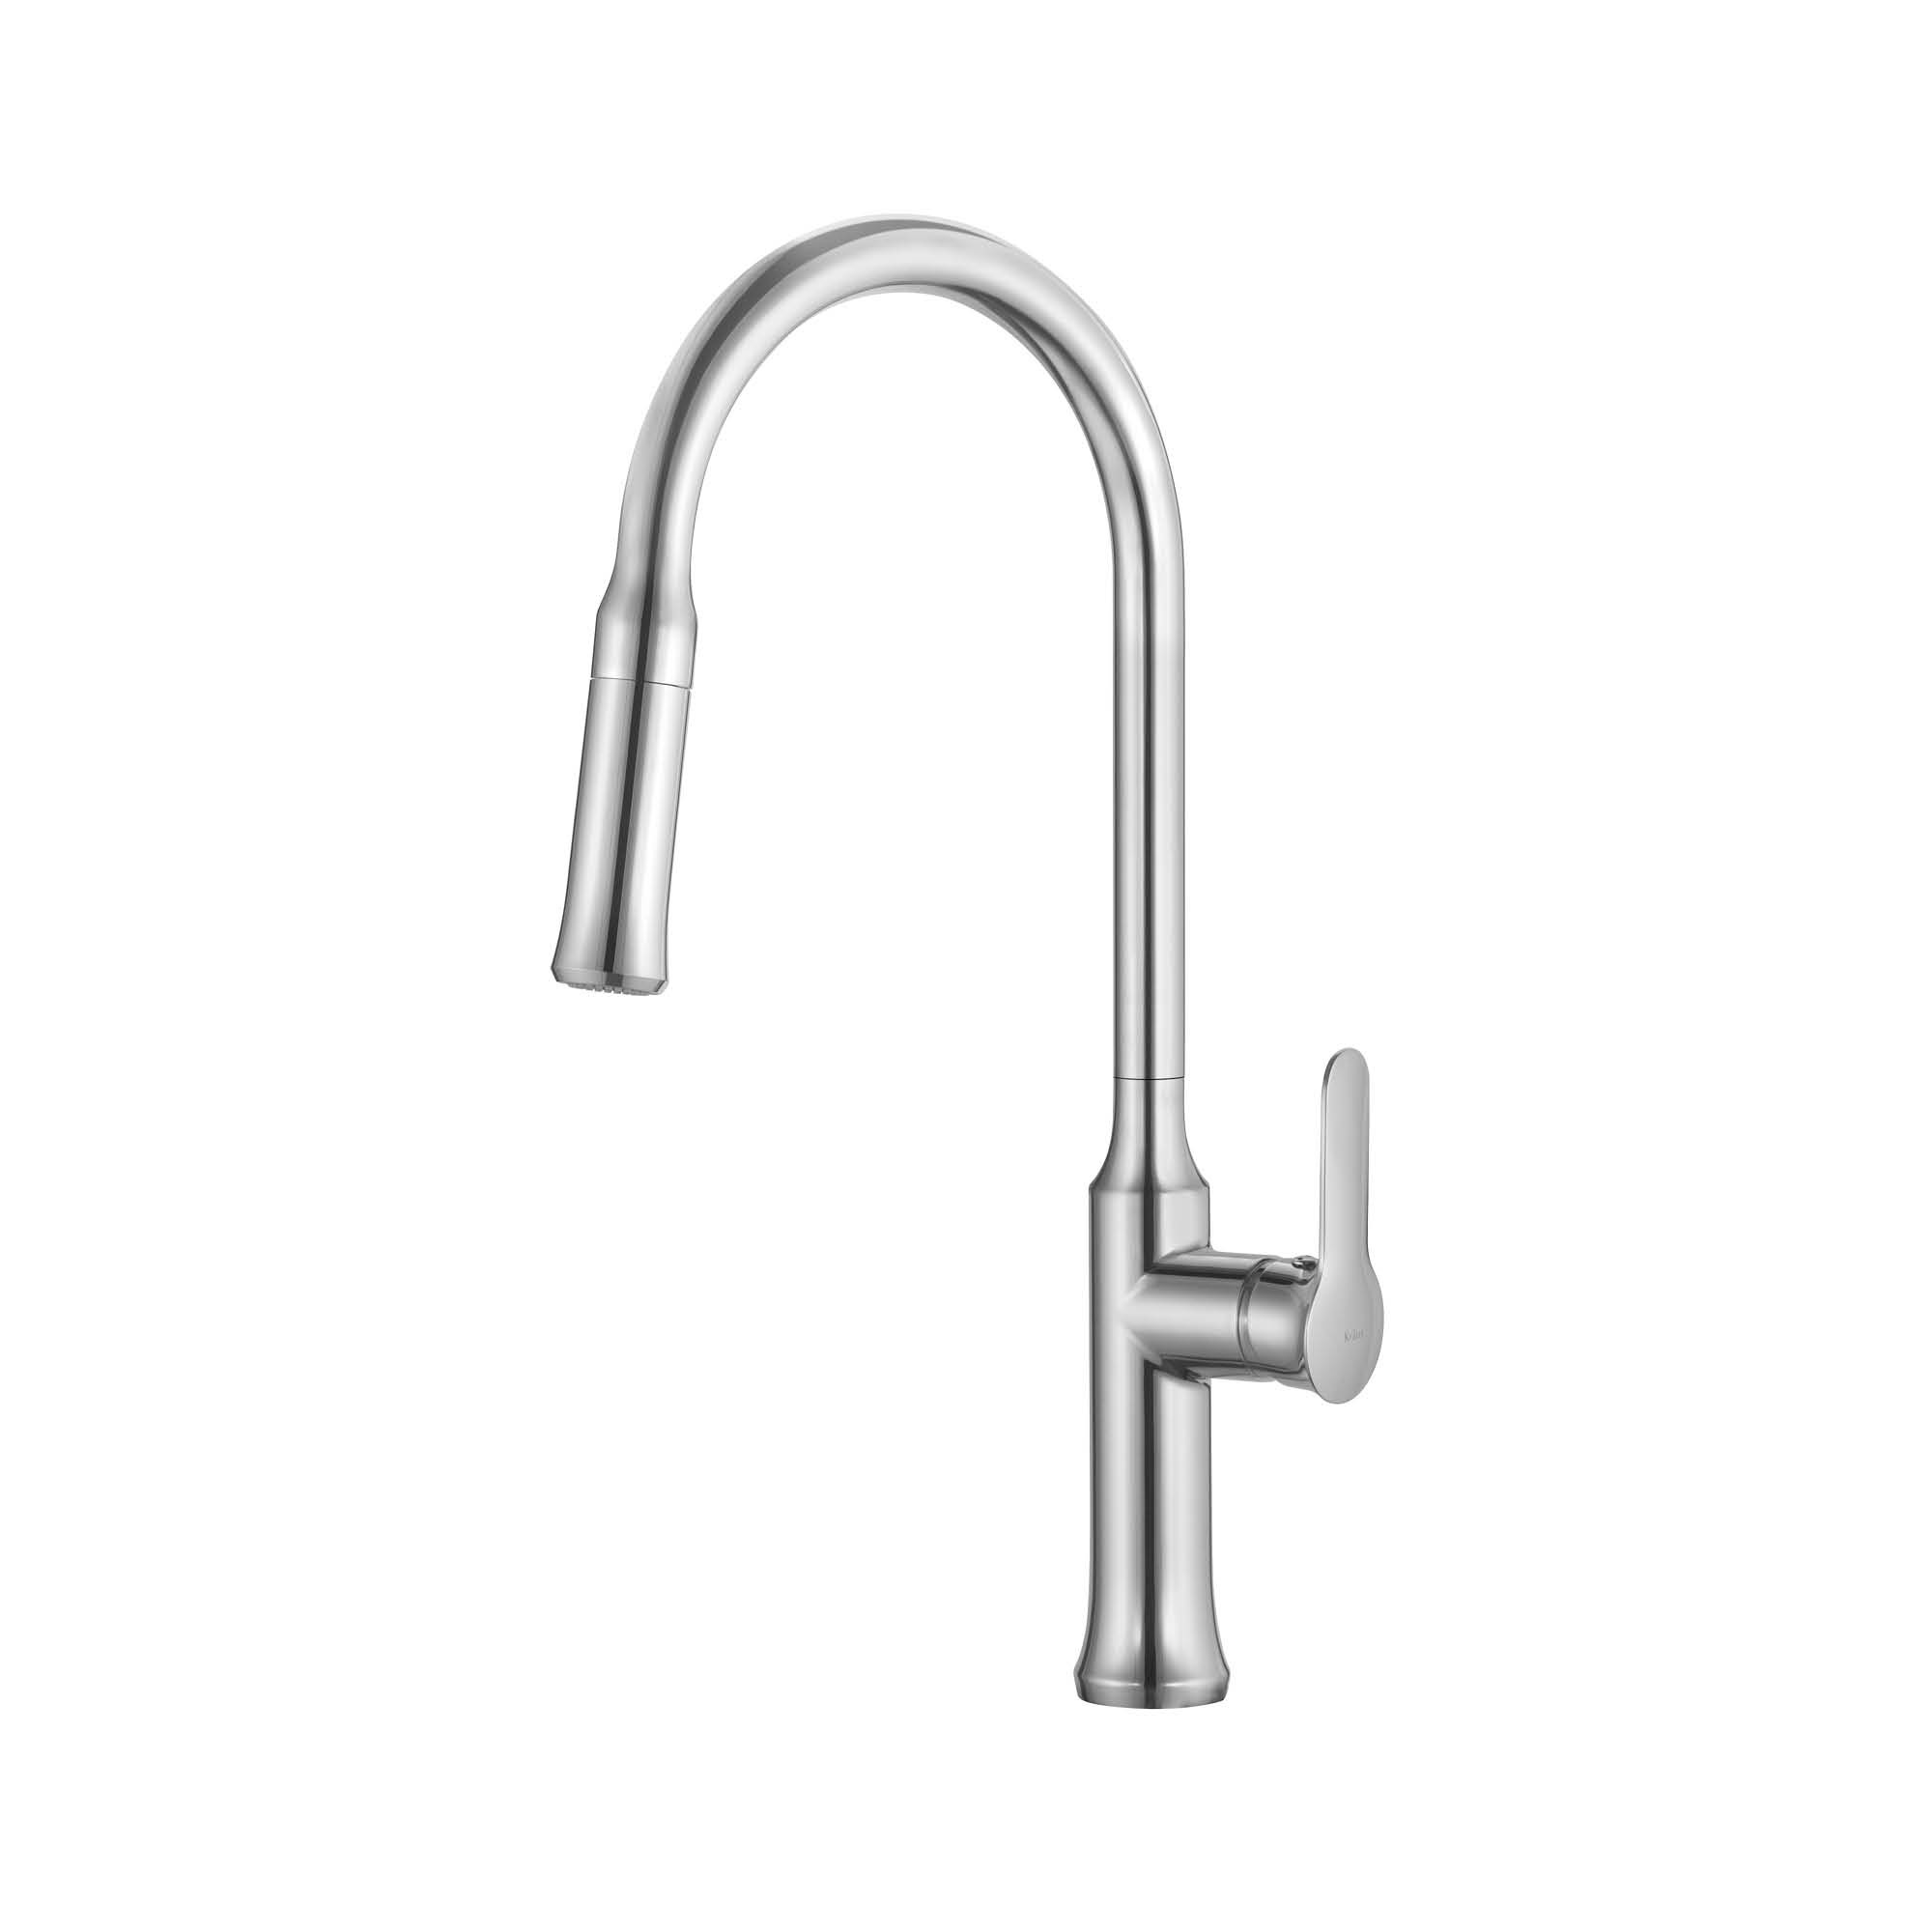 Kraus KPF-1630CH Kraus Nola Single Lever Pull Down Kitchen Faucet in Chrome